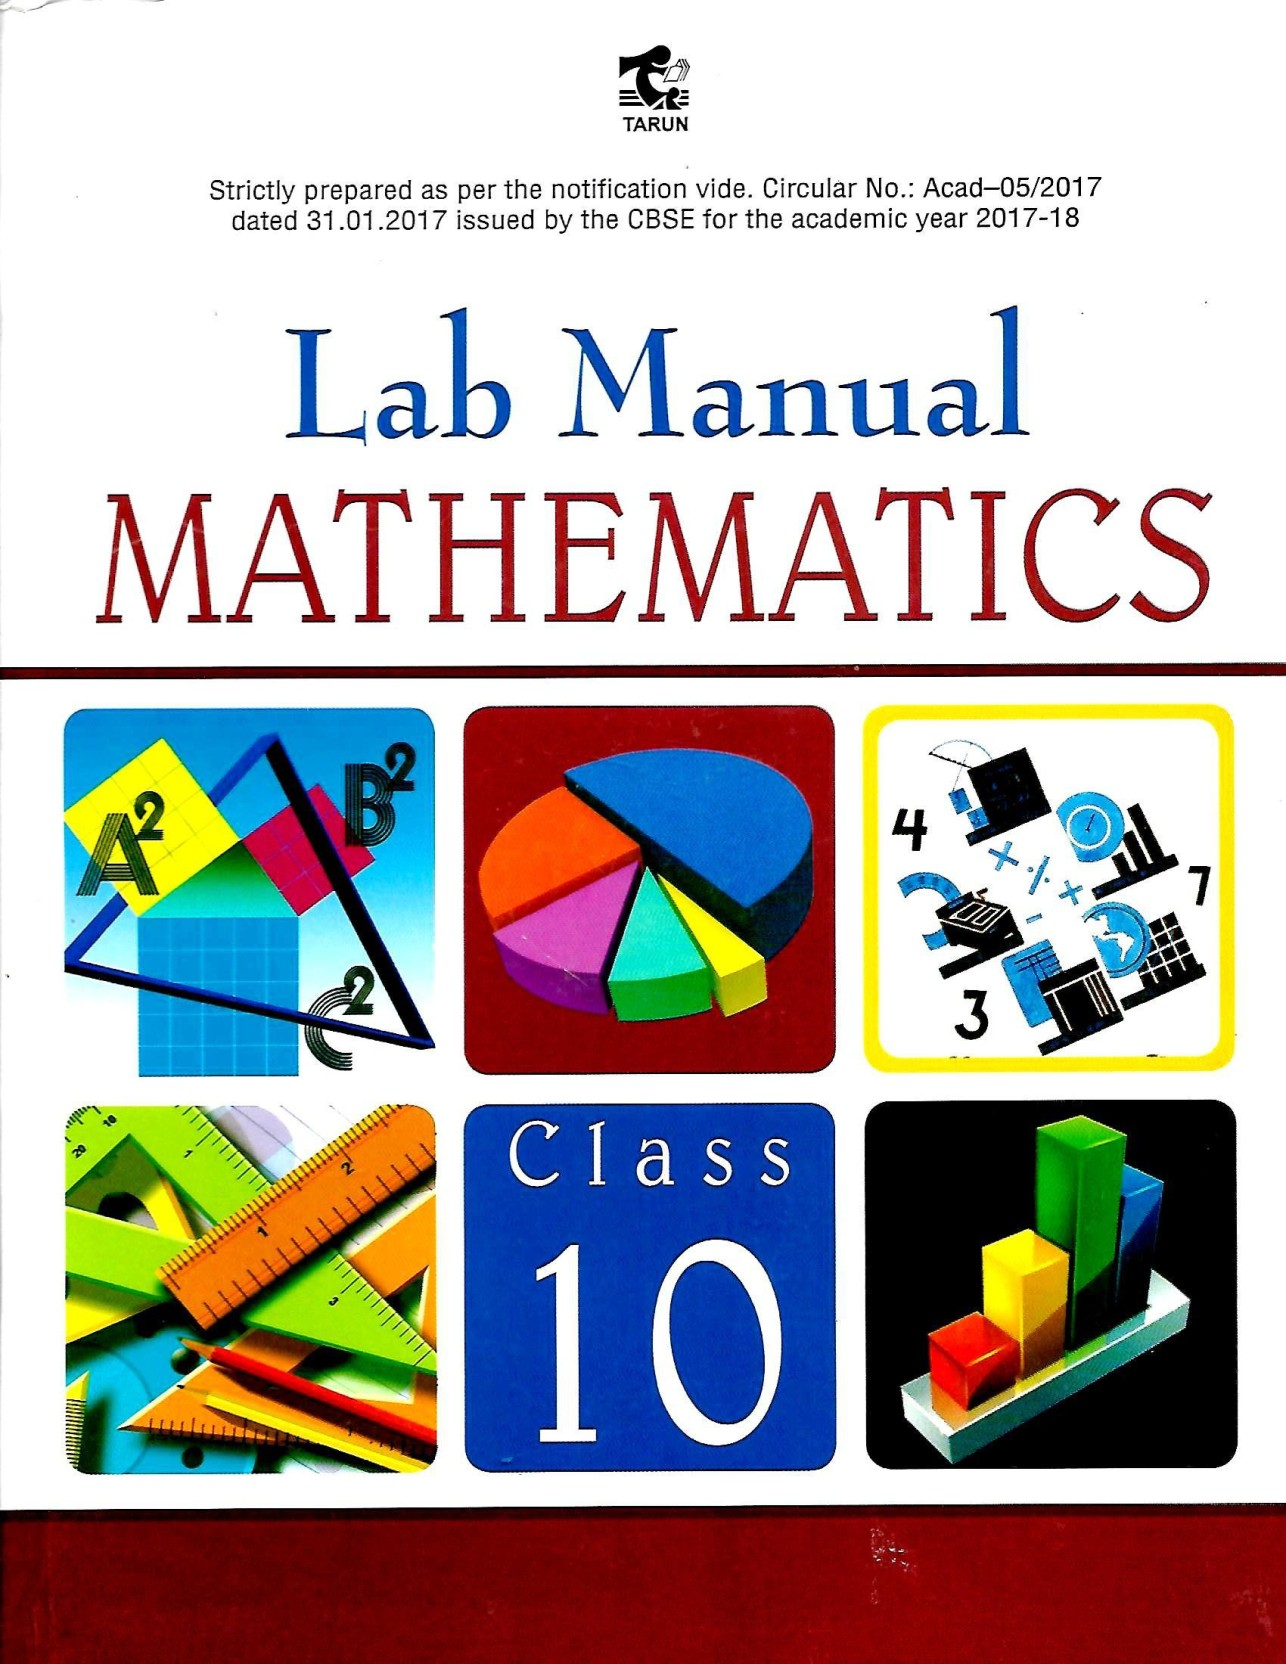 ... LAB MANUAL MATHEMATICS CLASS - 10. ON OFFER